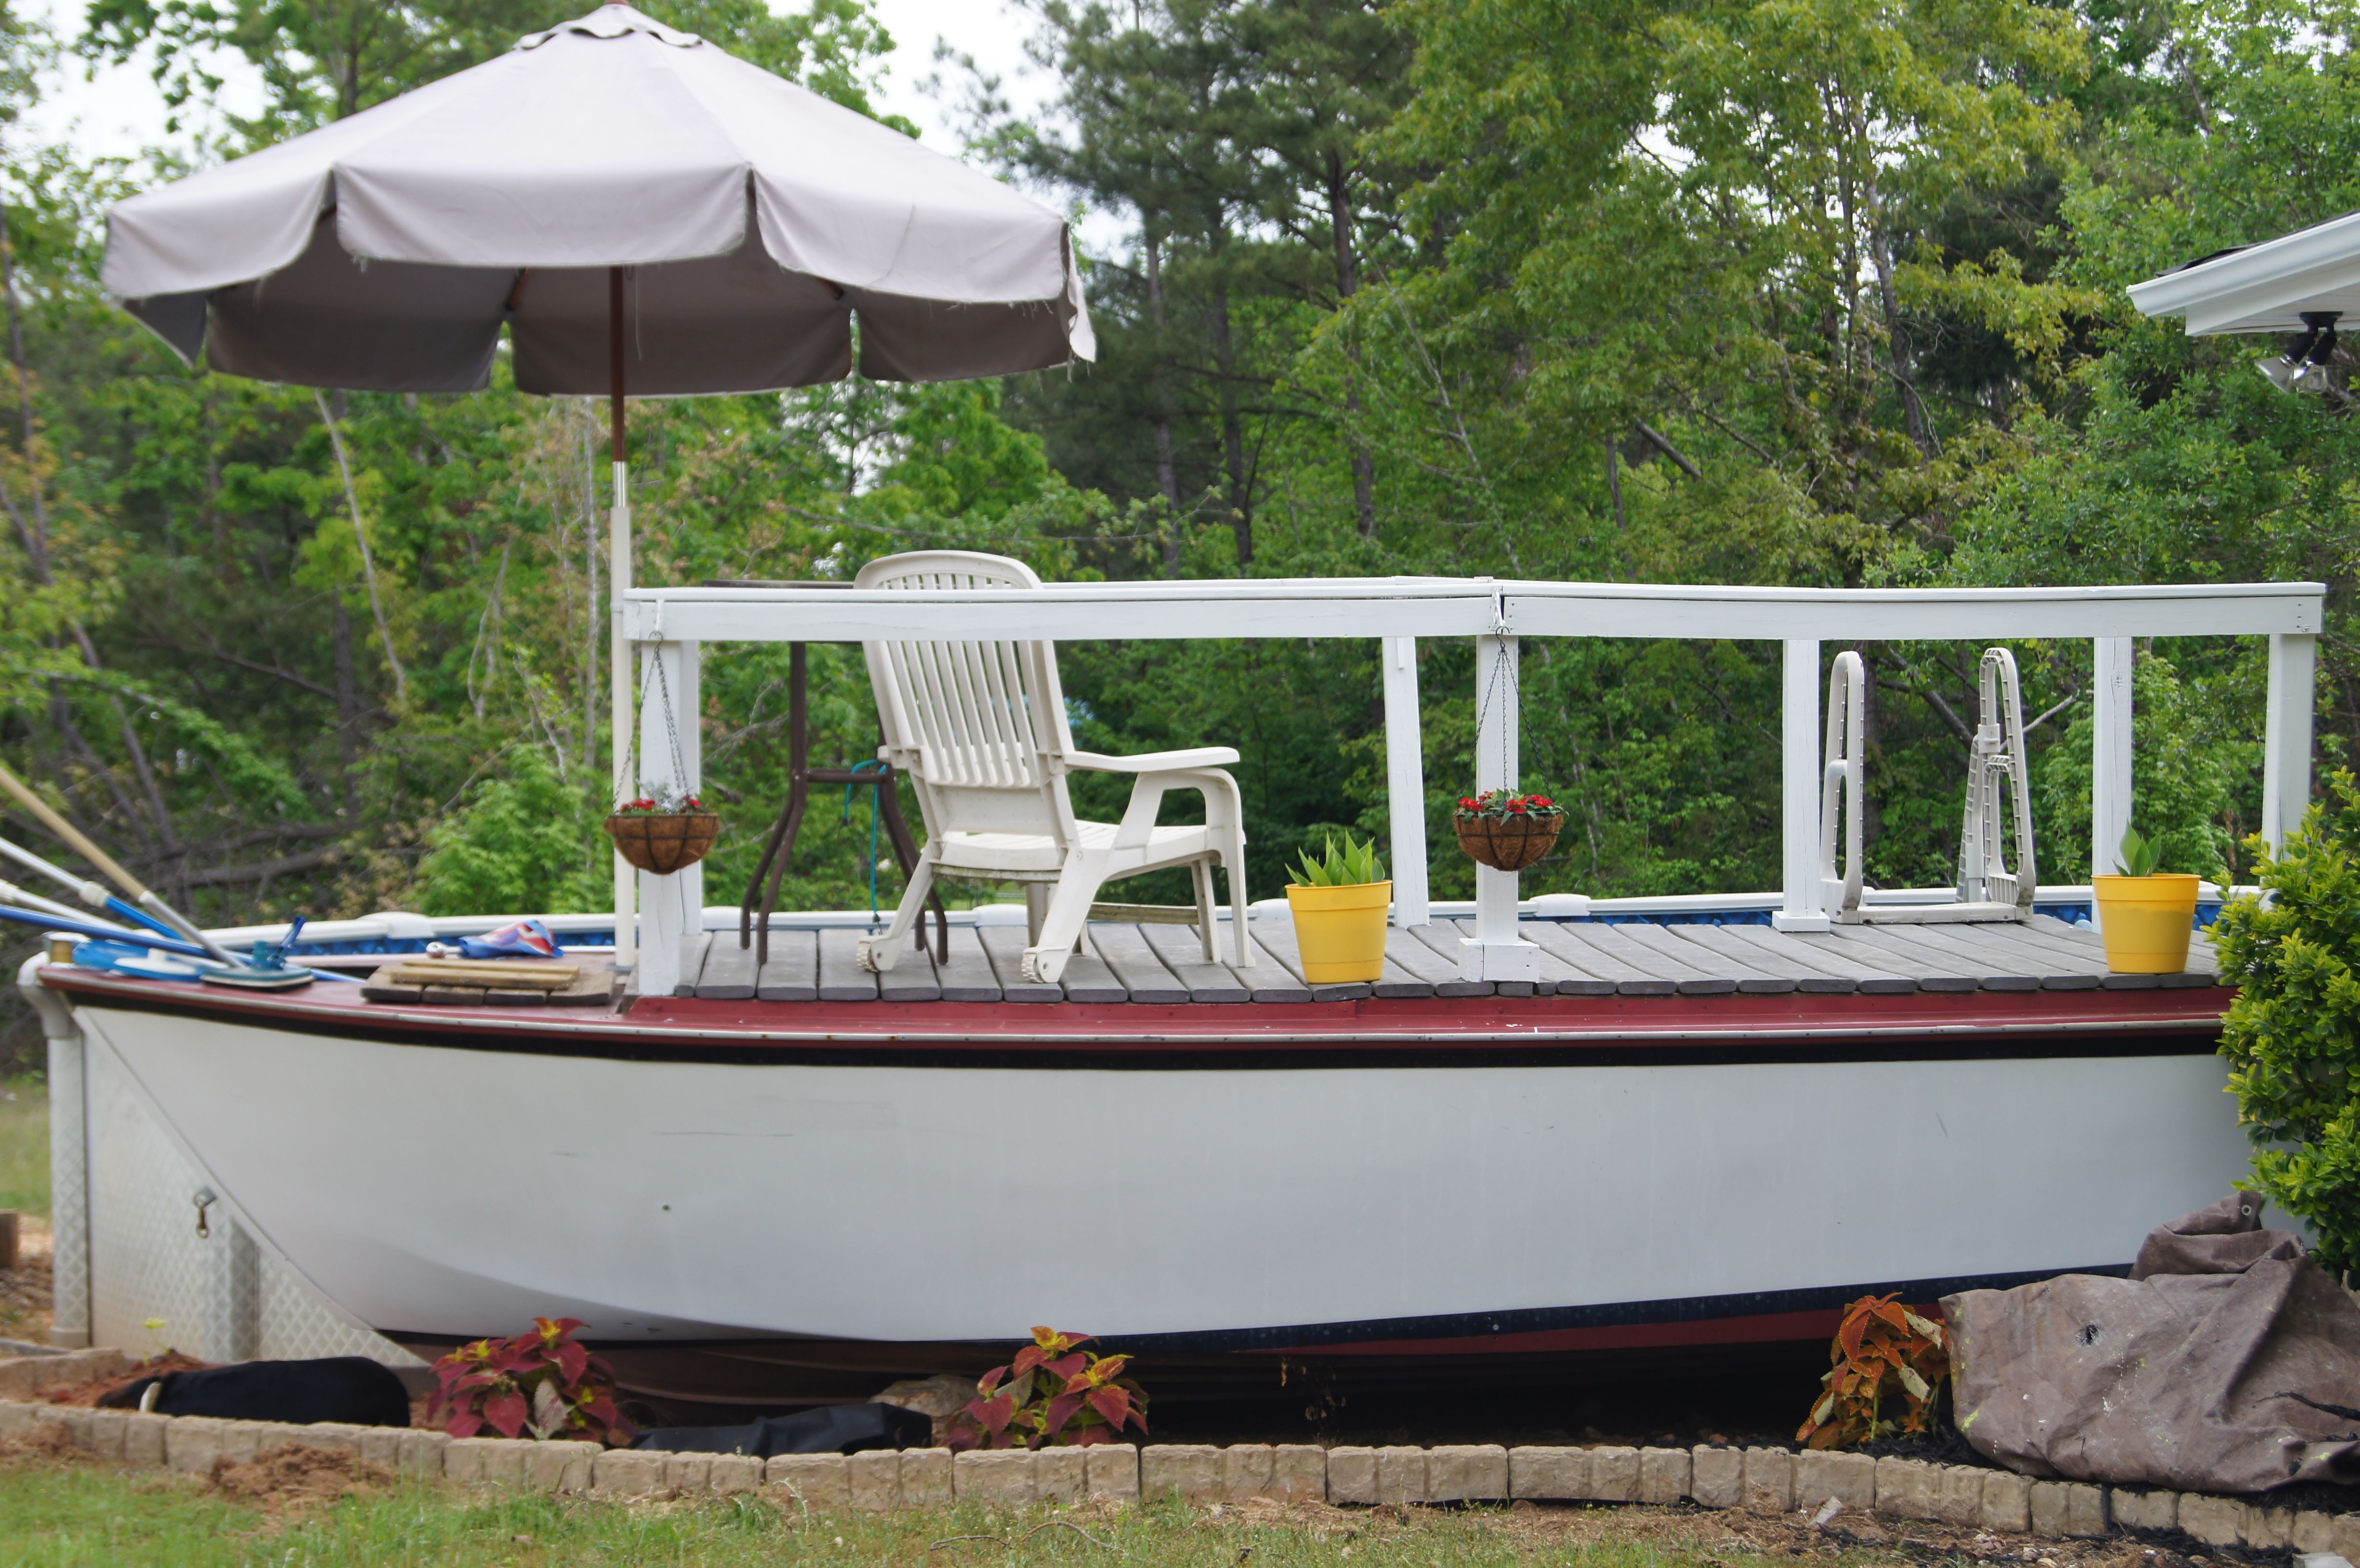 i took an old boat i found on craigslist for free and made it into